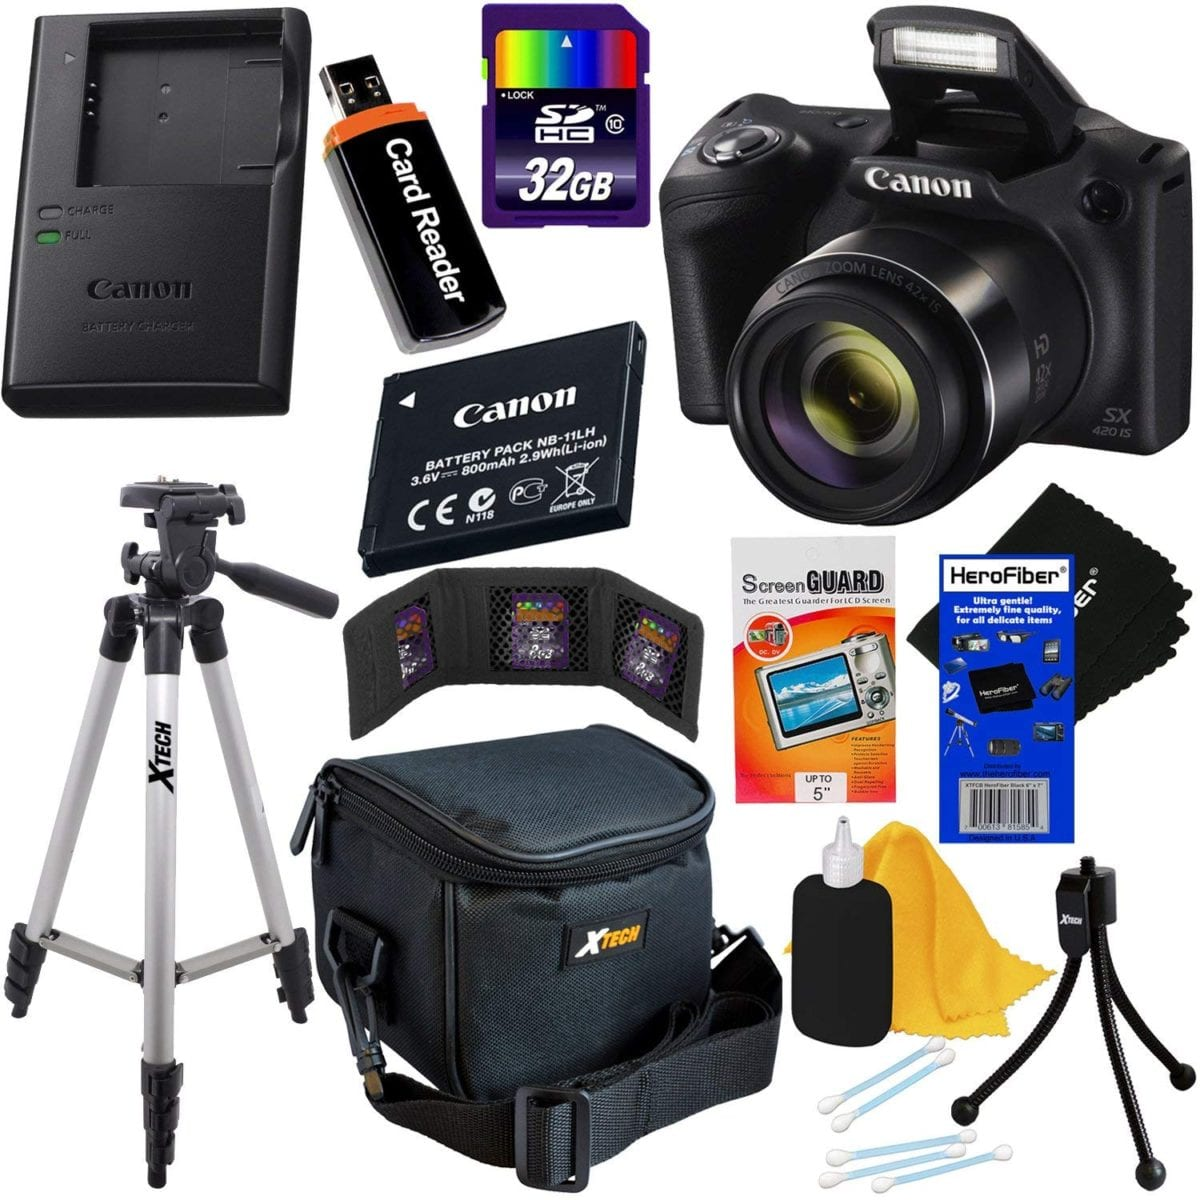 Canon Camera and Accessories gift ideas for entrepreneurs